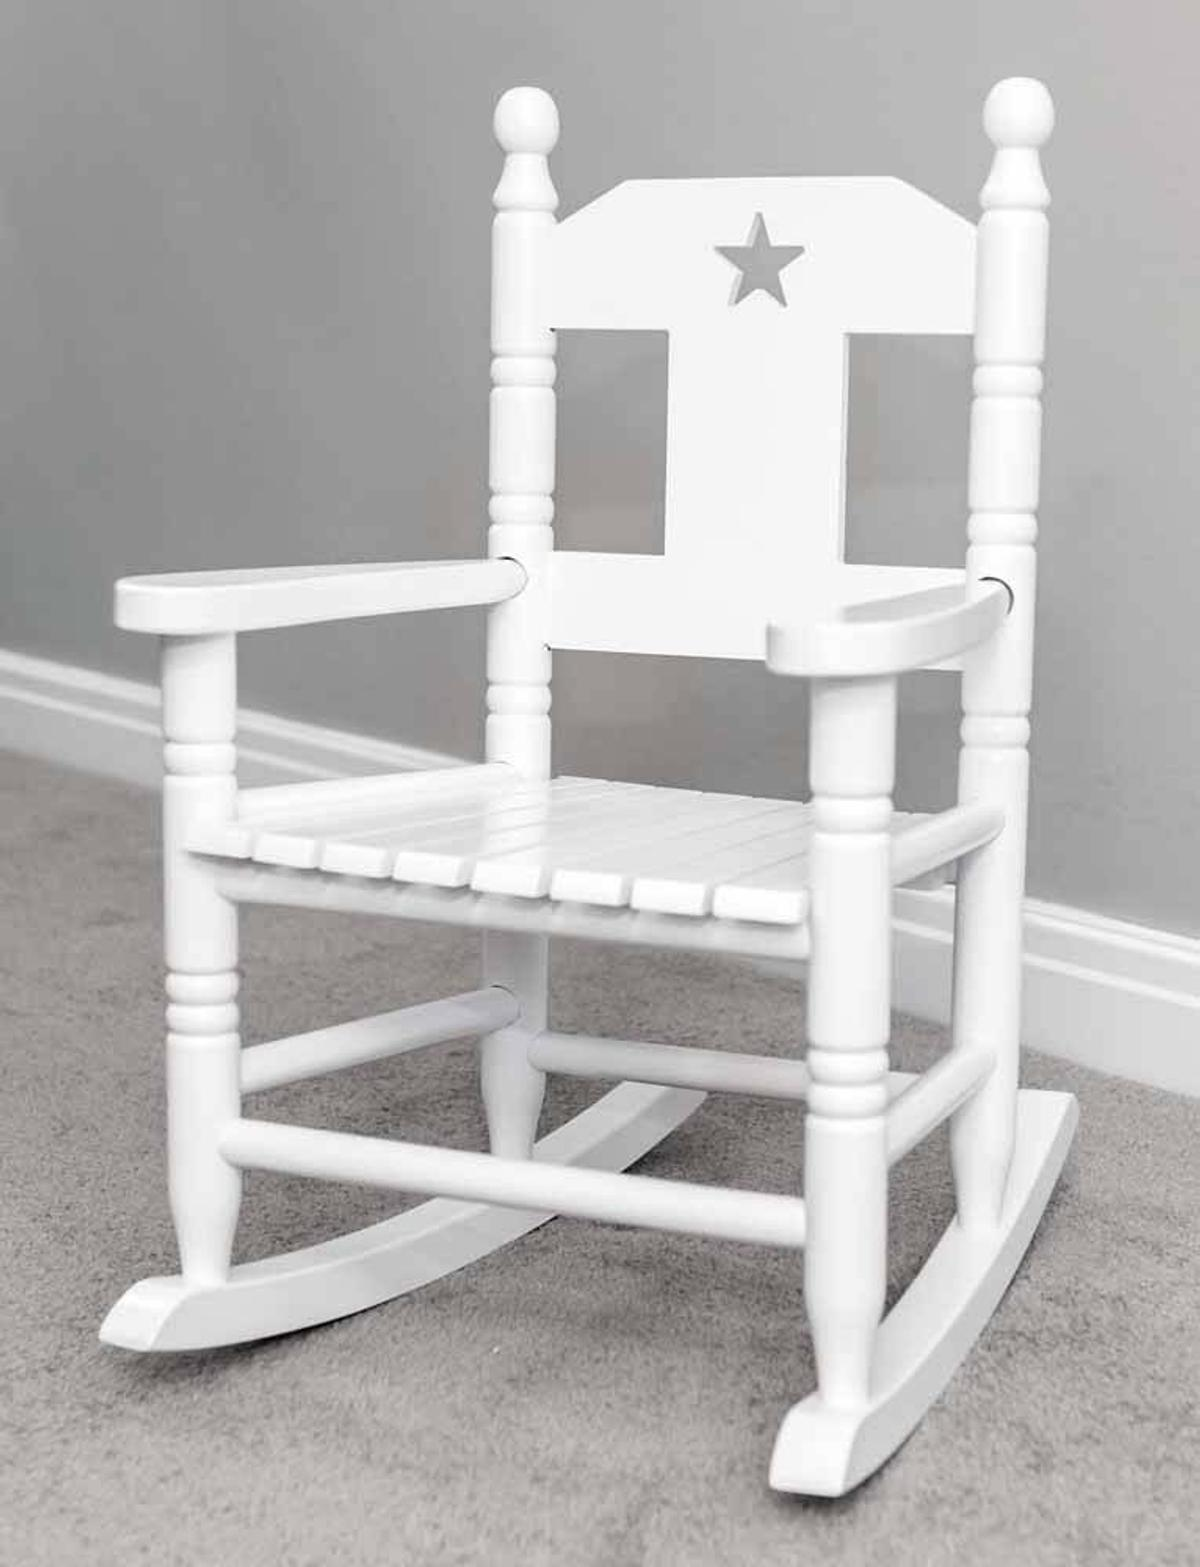 Swell Shabby Chic Childrens Rocking Chair Cjindustries Chair Design For Home Cjindustriesco